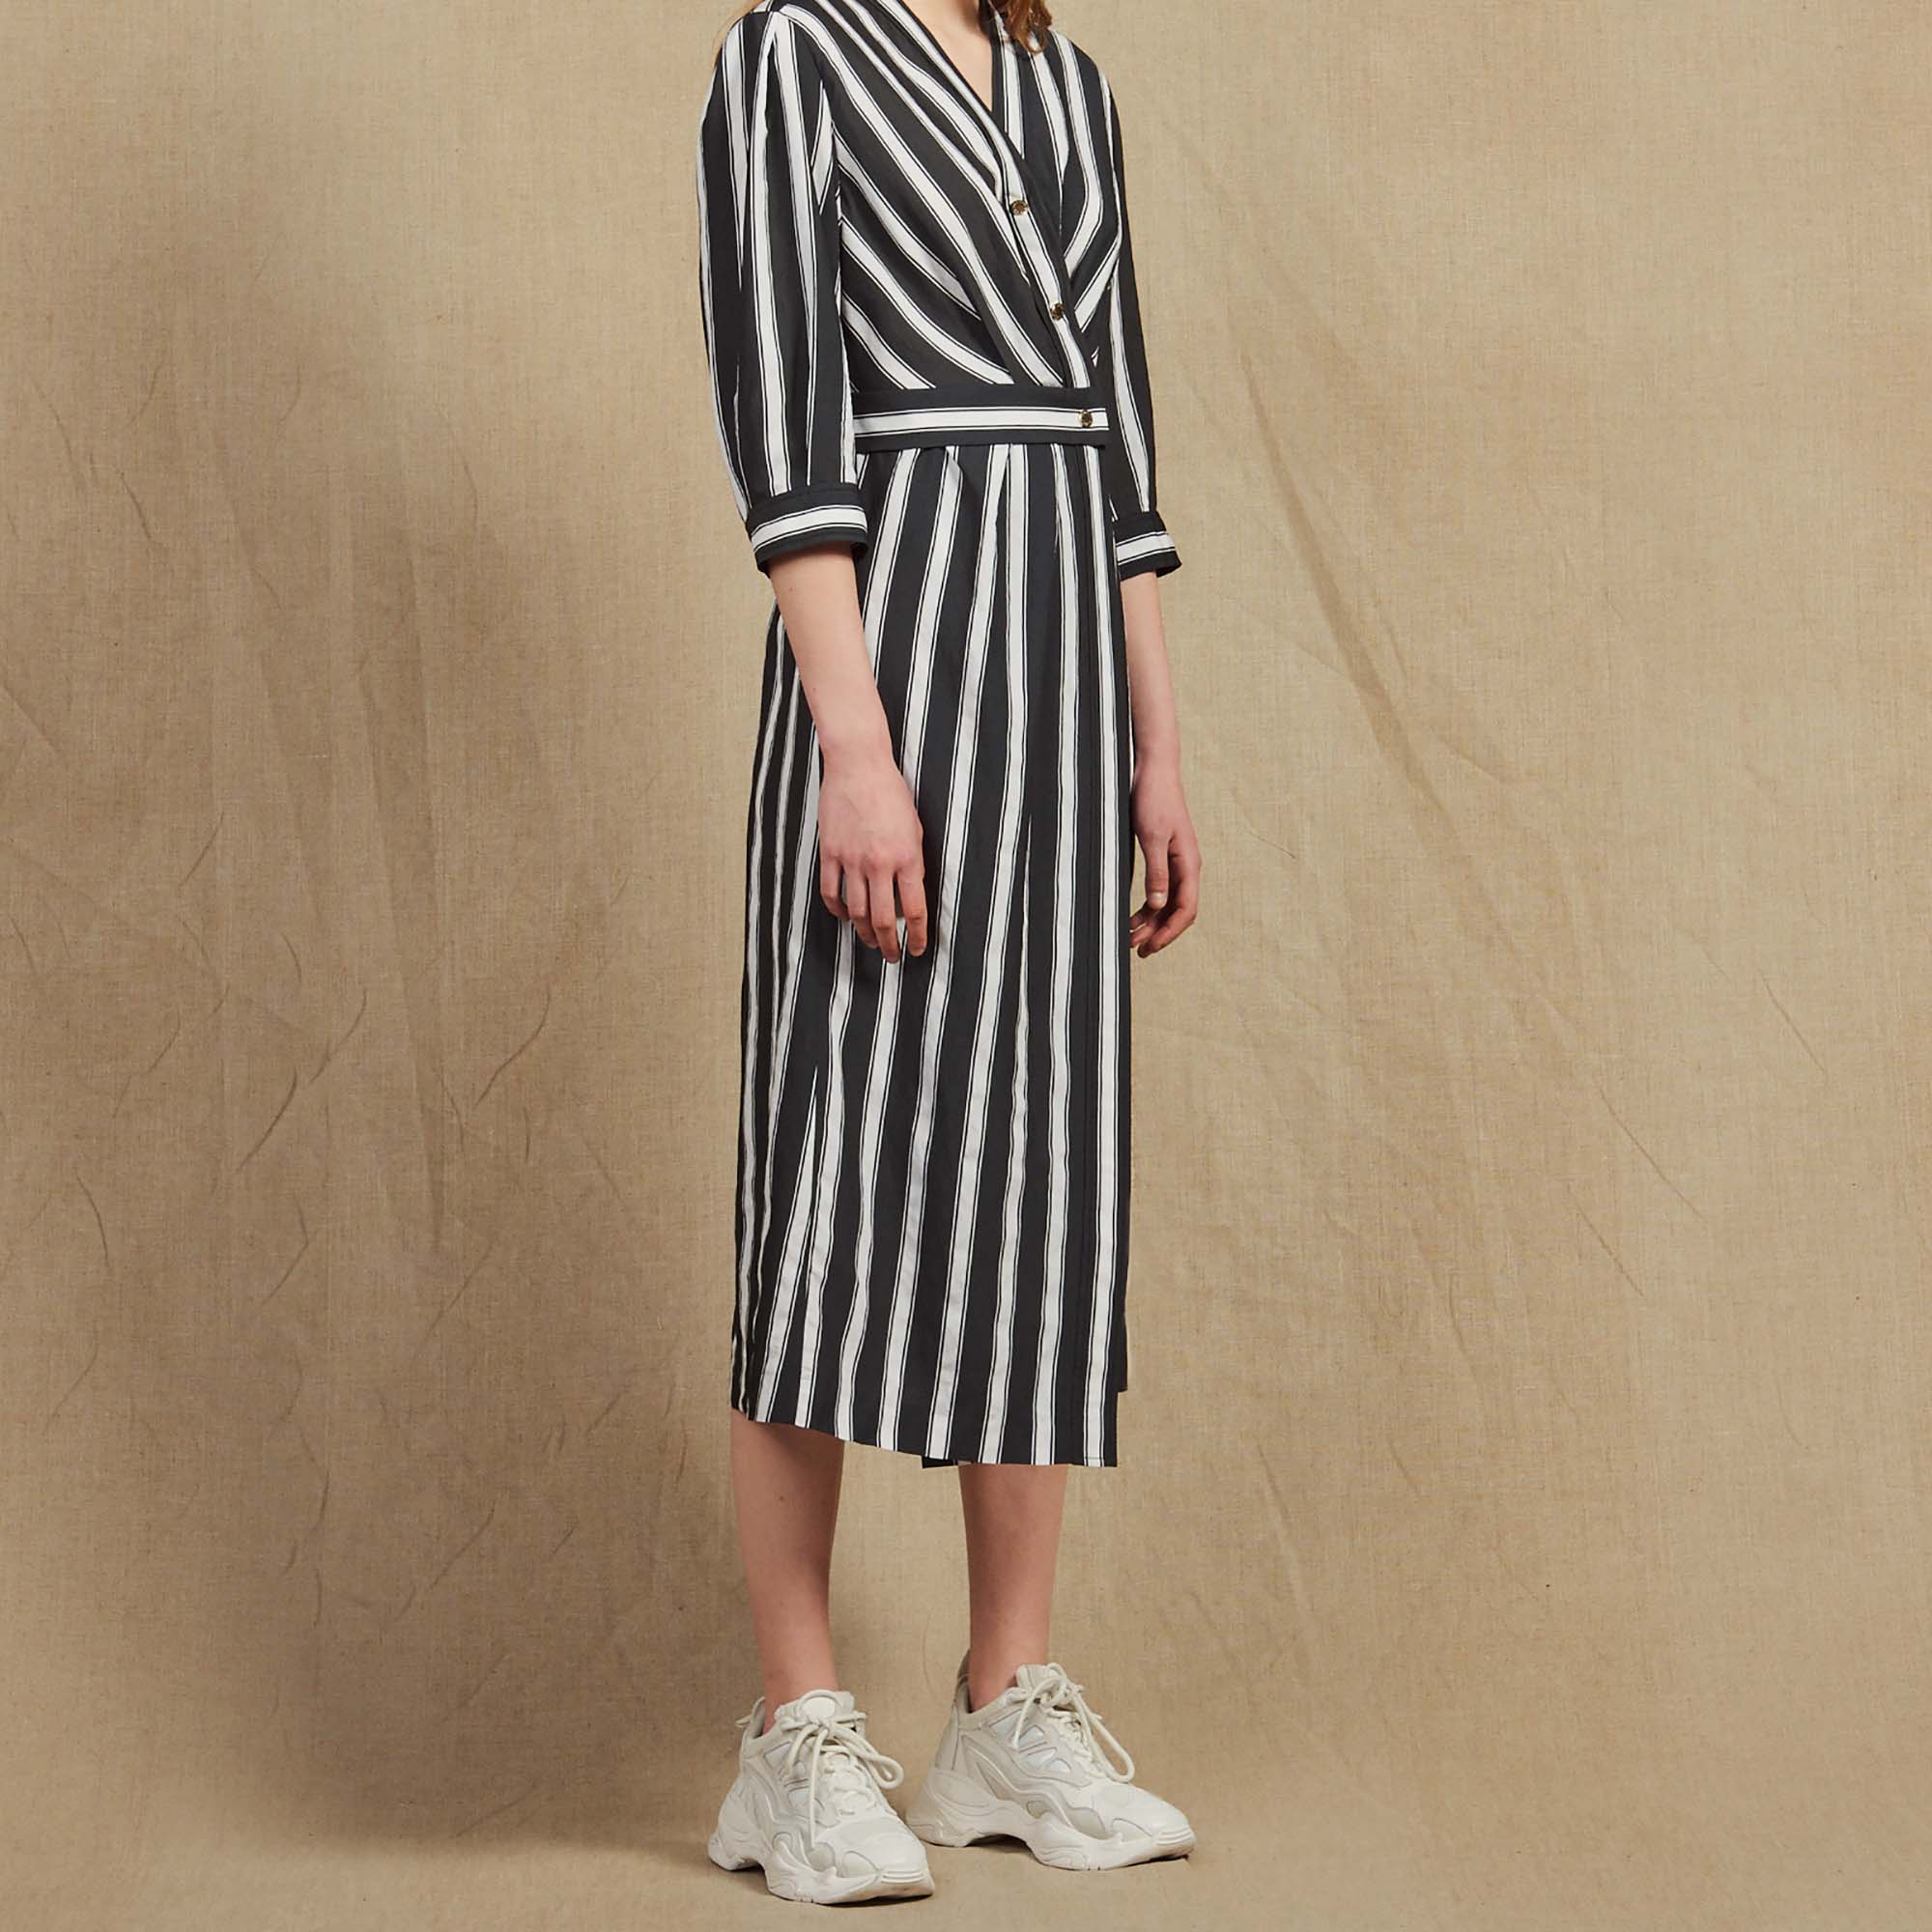 209bee237f0 Midi Dress With Contrasting Stripes   Dresses color Black ...